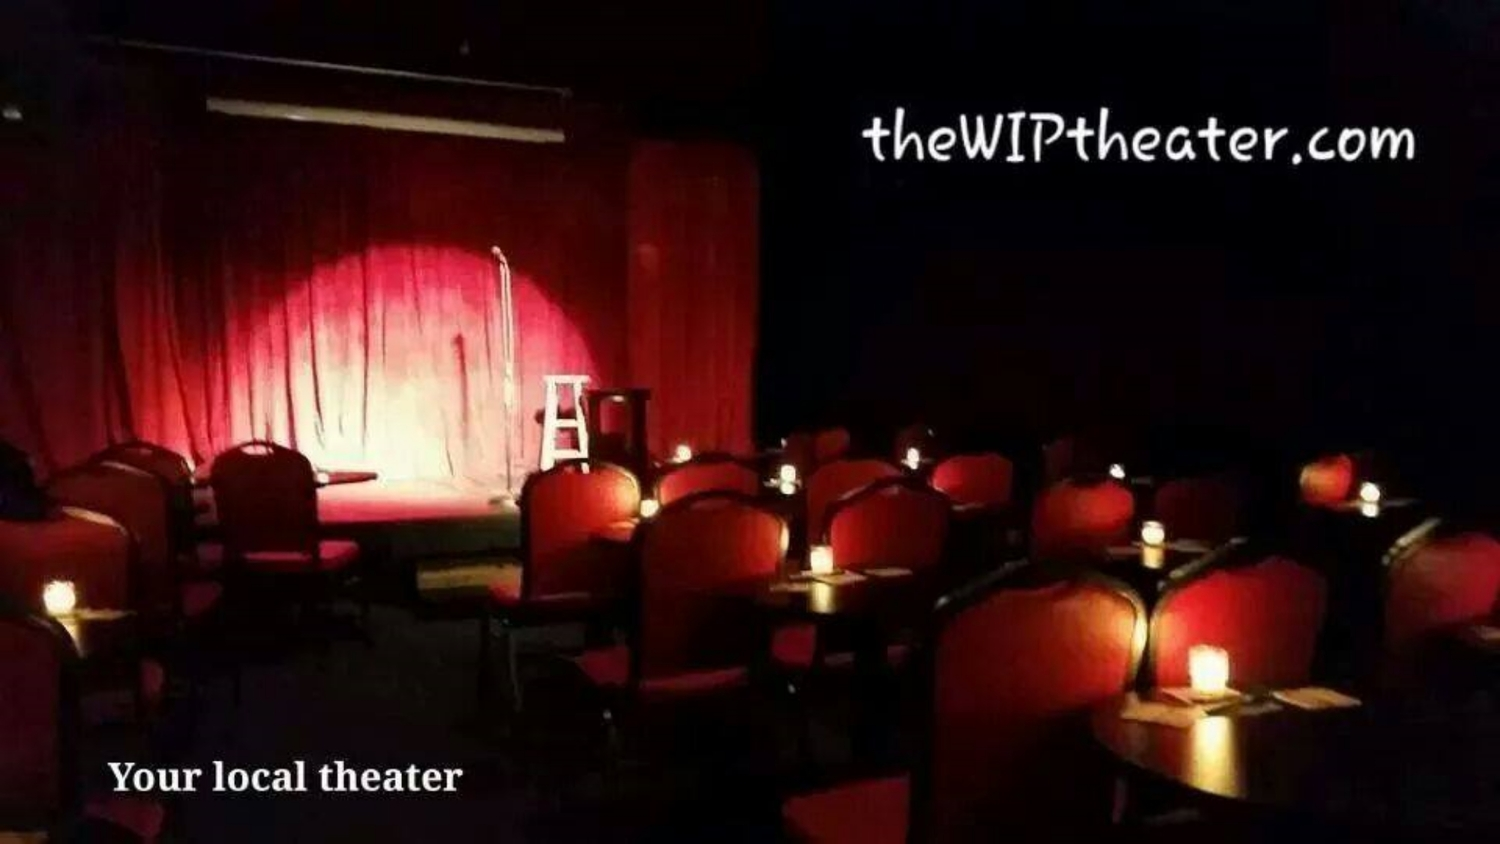 The WIP Theater